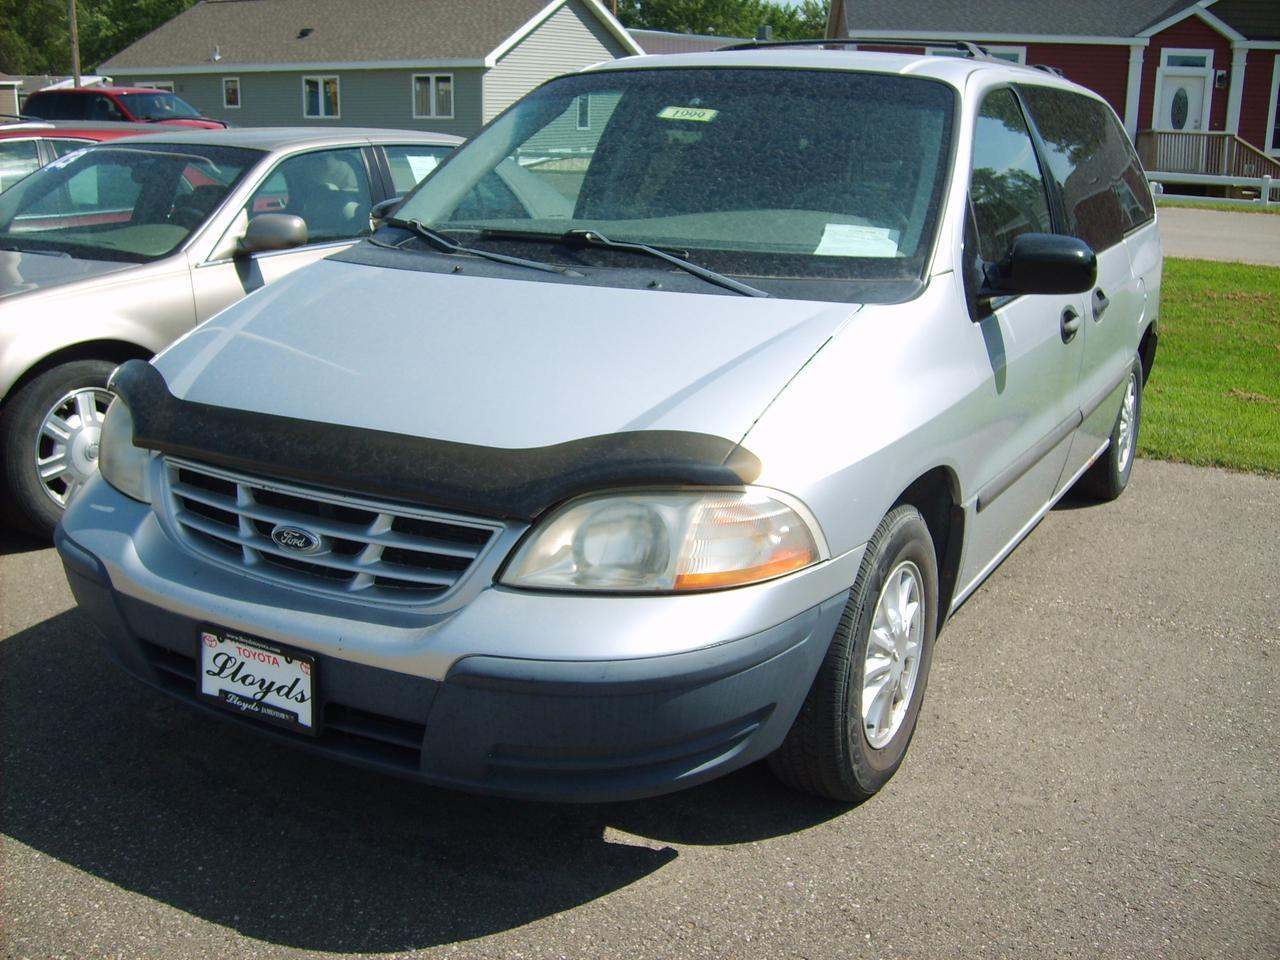 used 1999 ford windstar lx in jamestown nd 1999 ford windstar lx